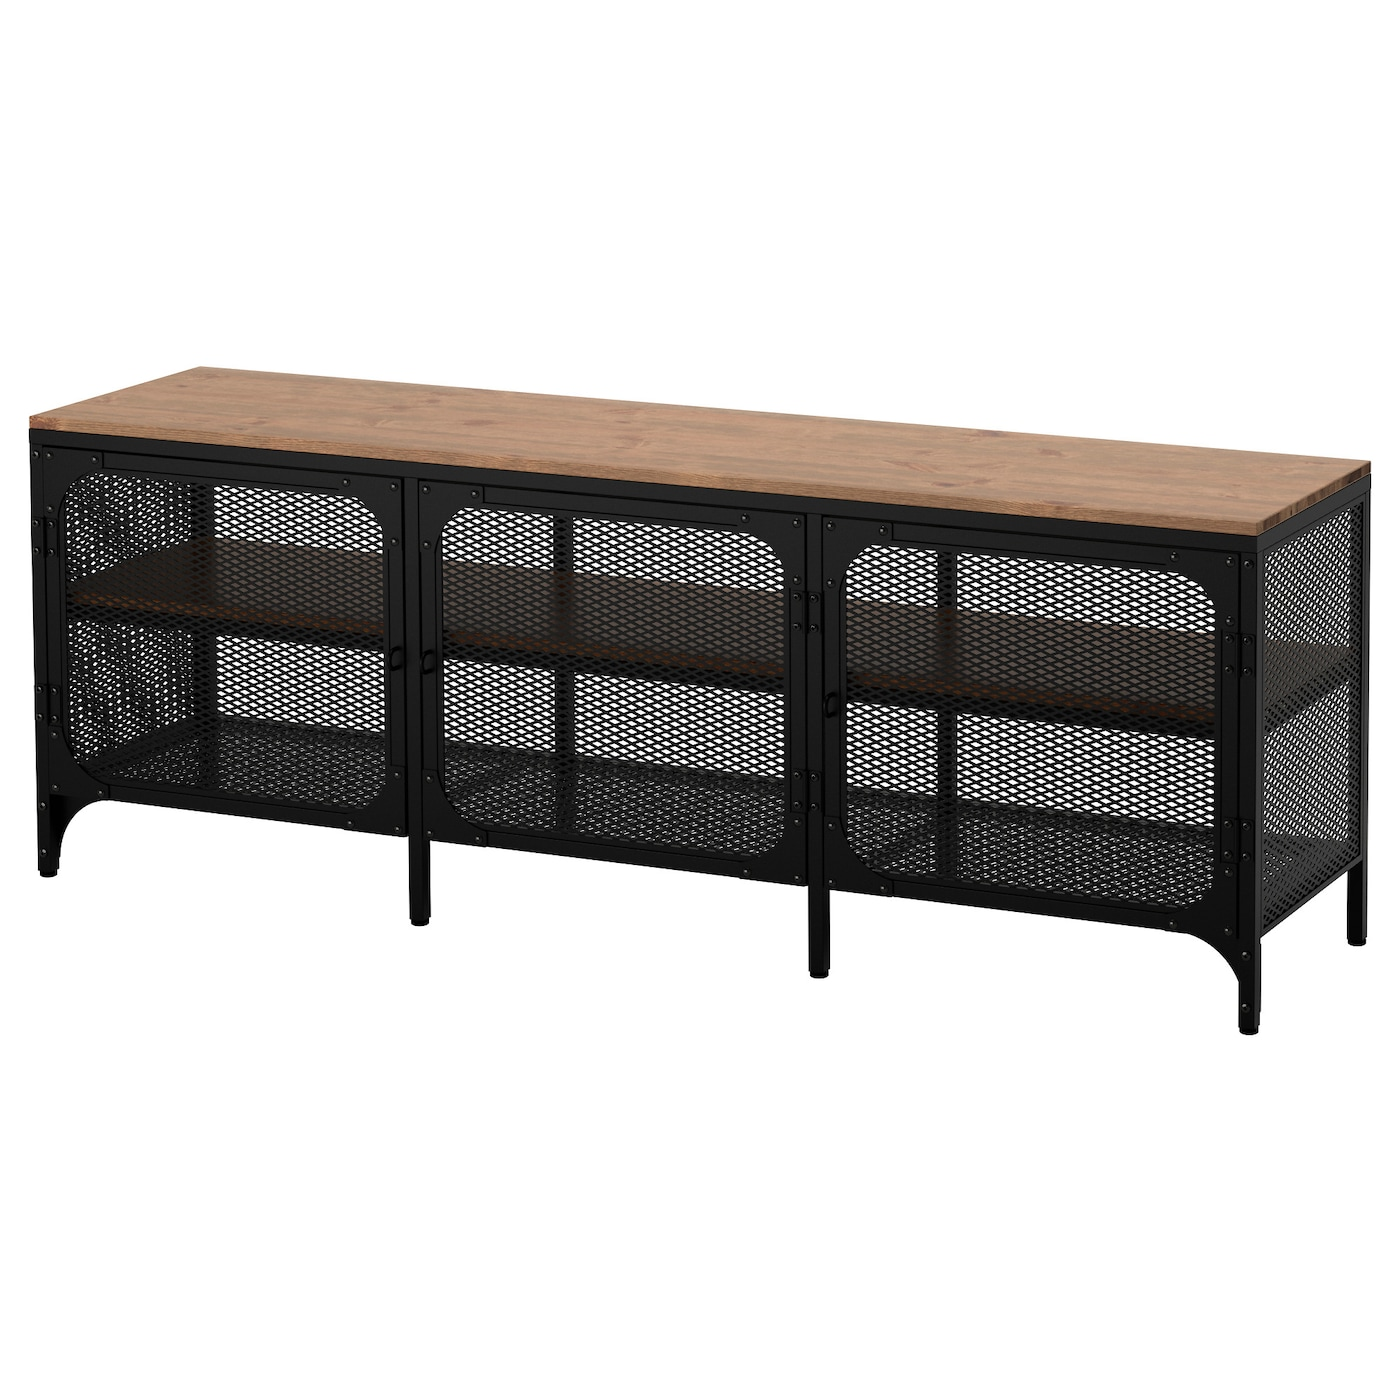 Meuble Tv Fjallbo - Fj Llbo Tv Bench Black 150×54 Cm Ikea[mjhdah]http://www.ikea.com/gb/en/images/products/fj%C3%A4llbo-tv-bench-black__0476528_pe616397_s5.jpg